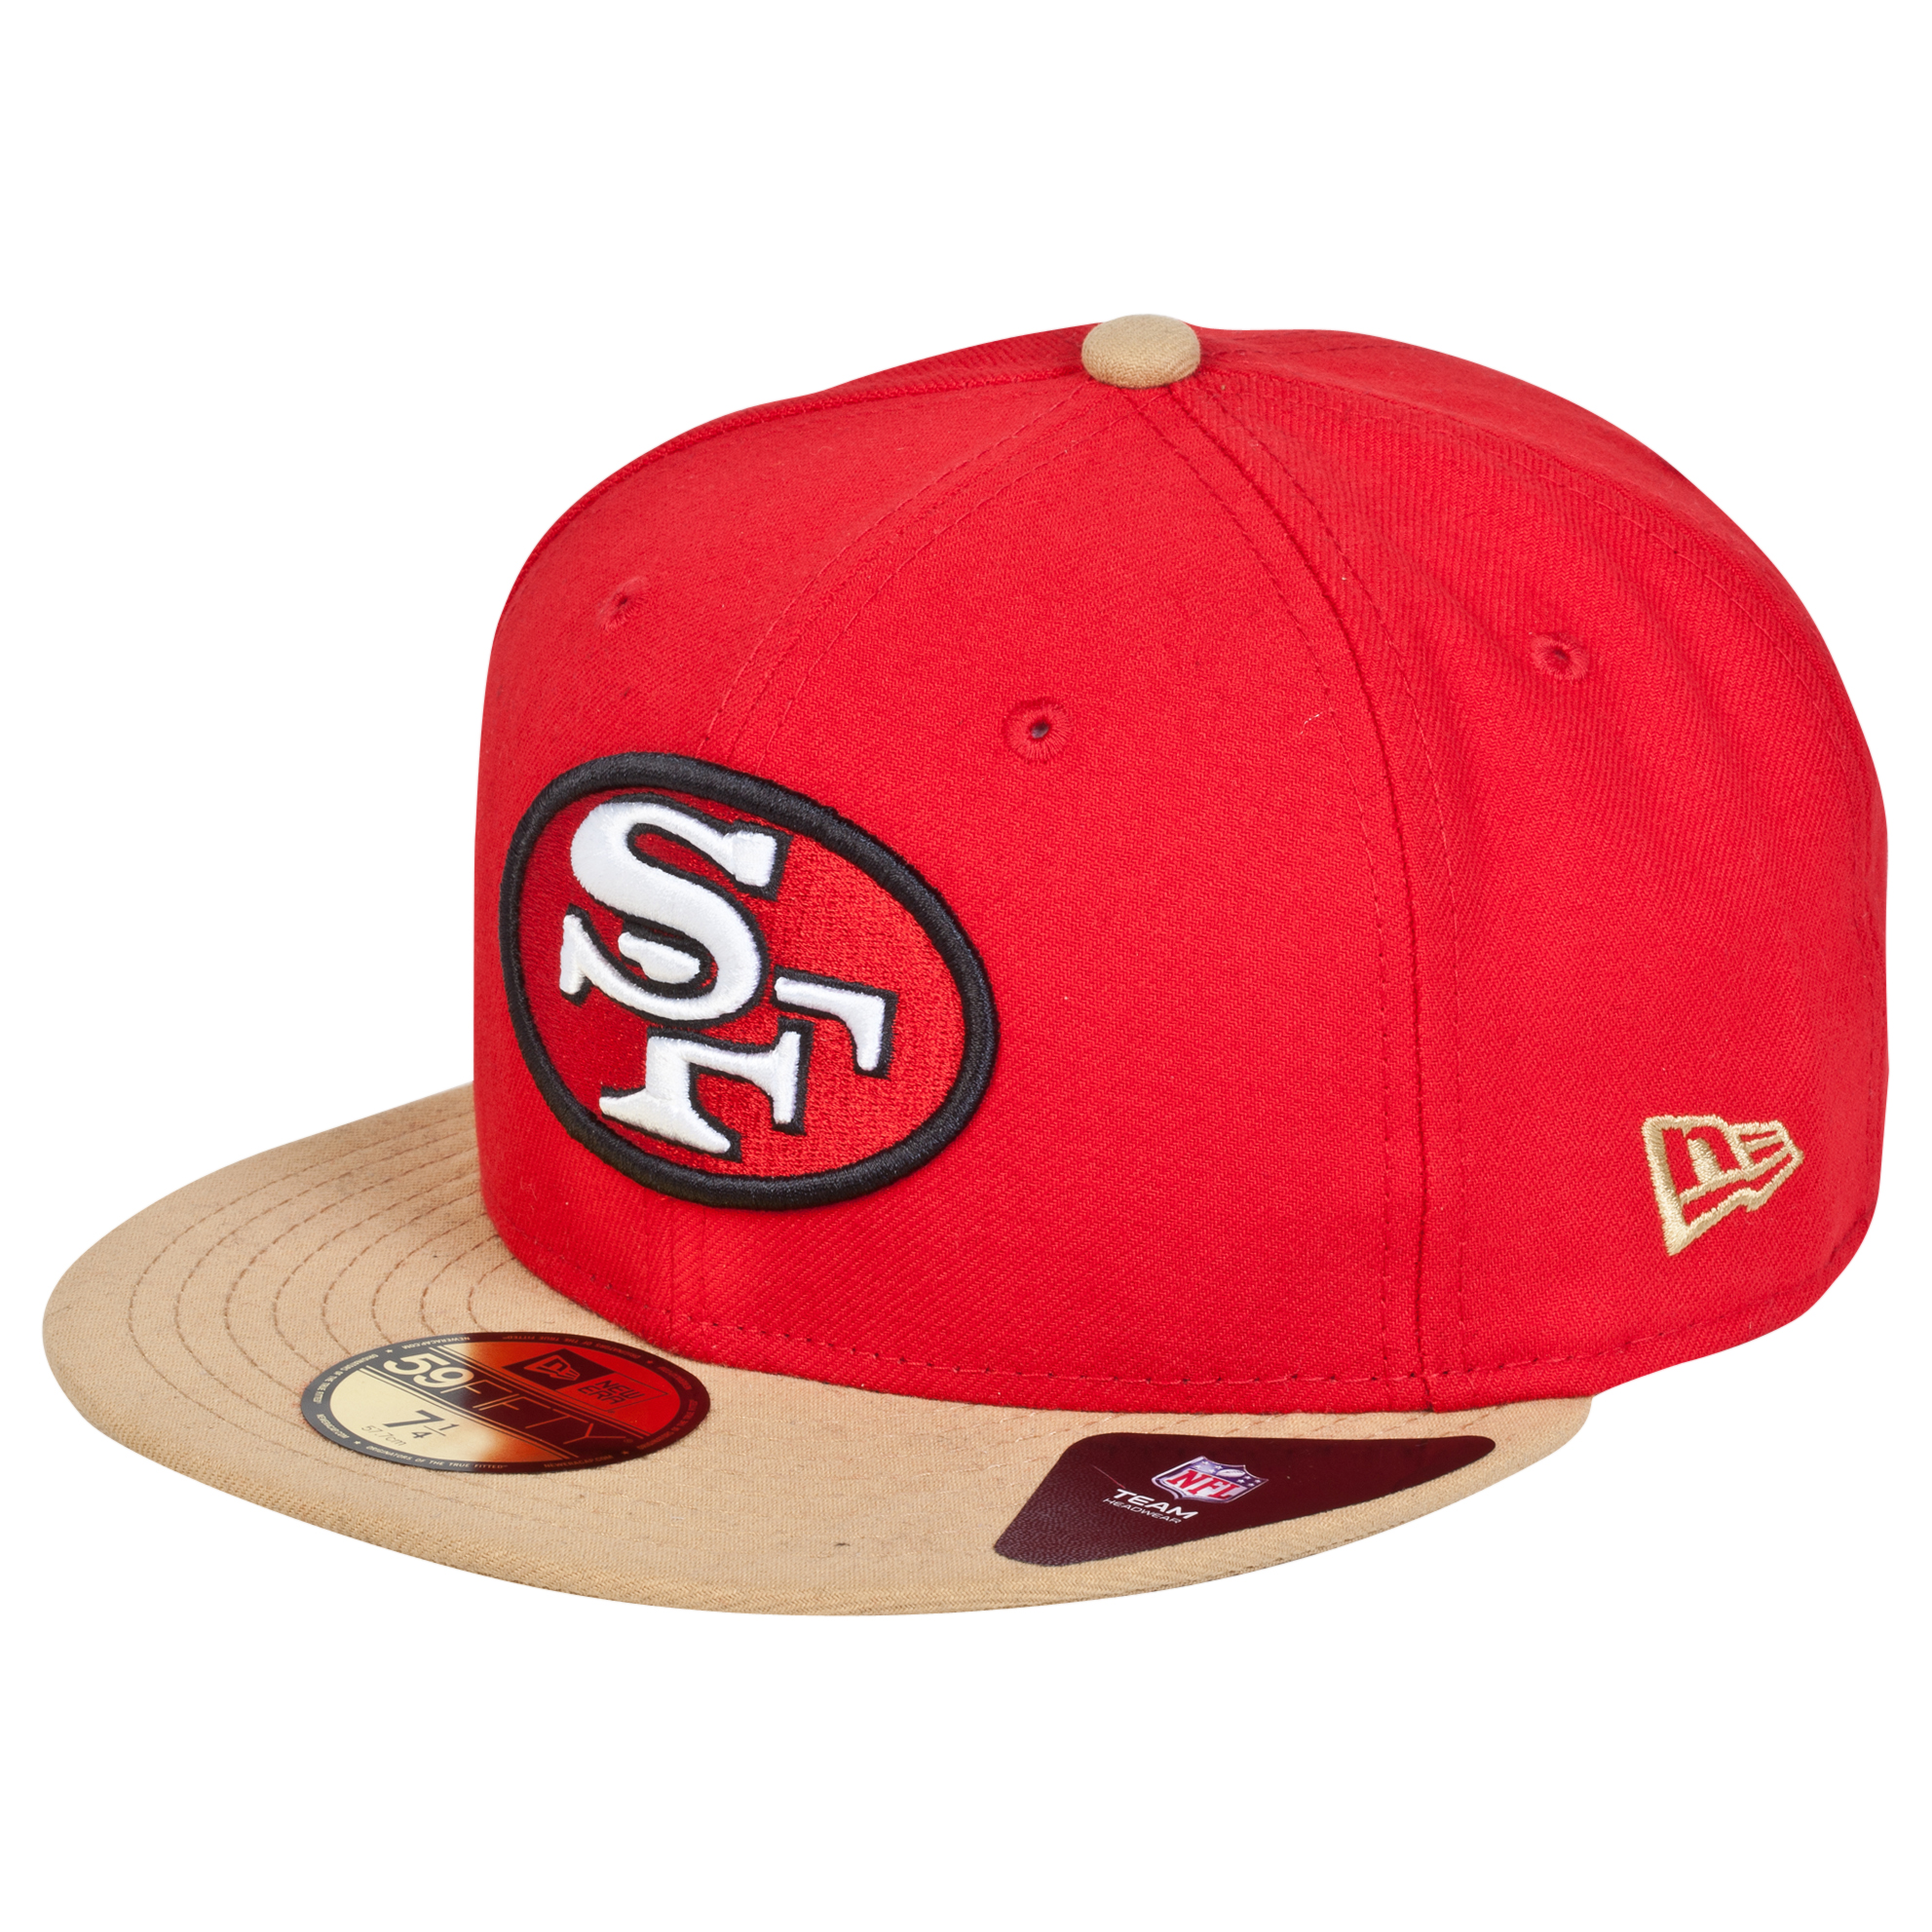 San Francisco 49ers New Era 59FIFTY SB Side Patch Super Bowl XVI Fitted Cap